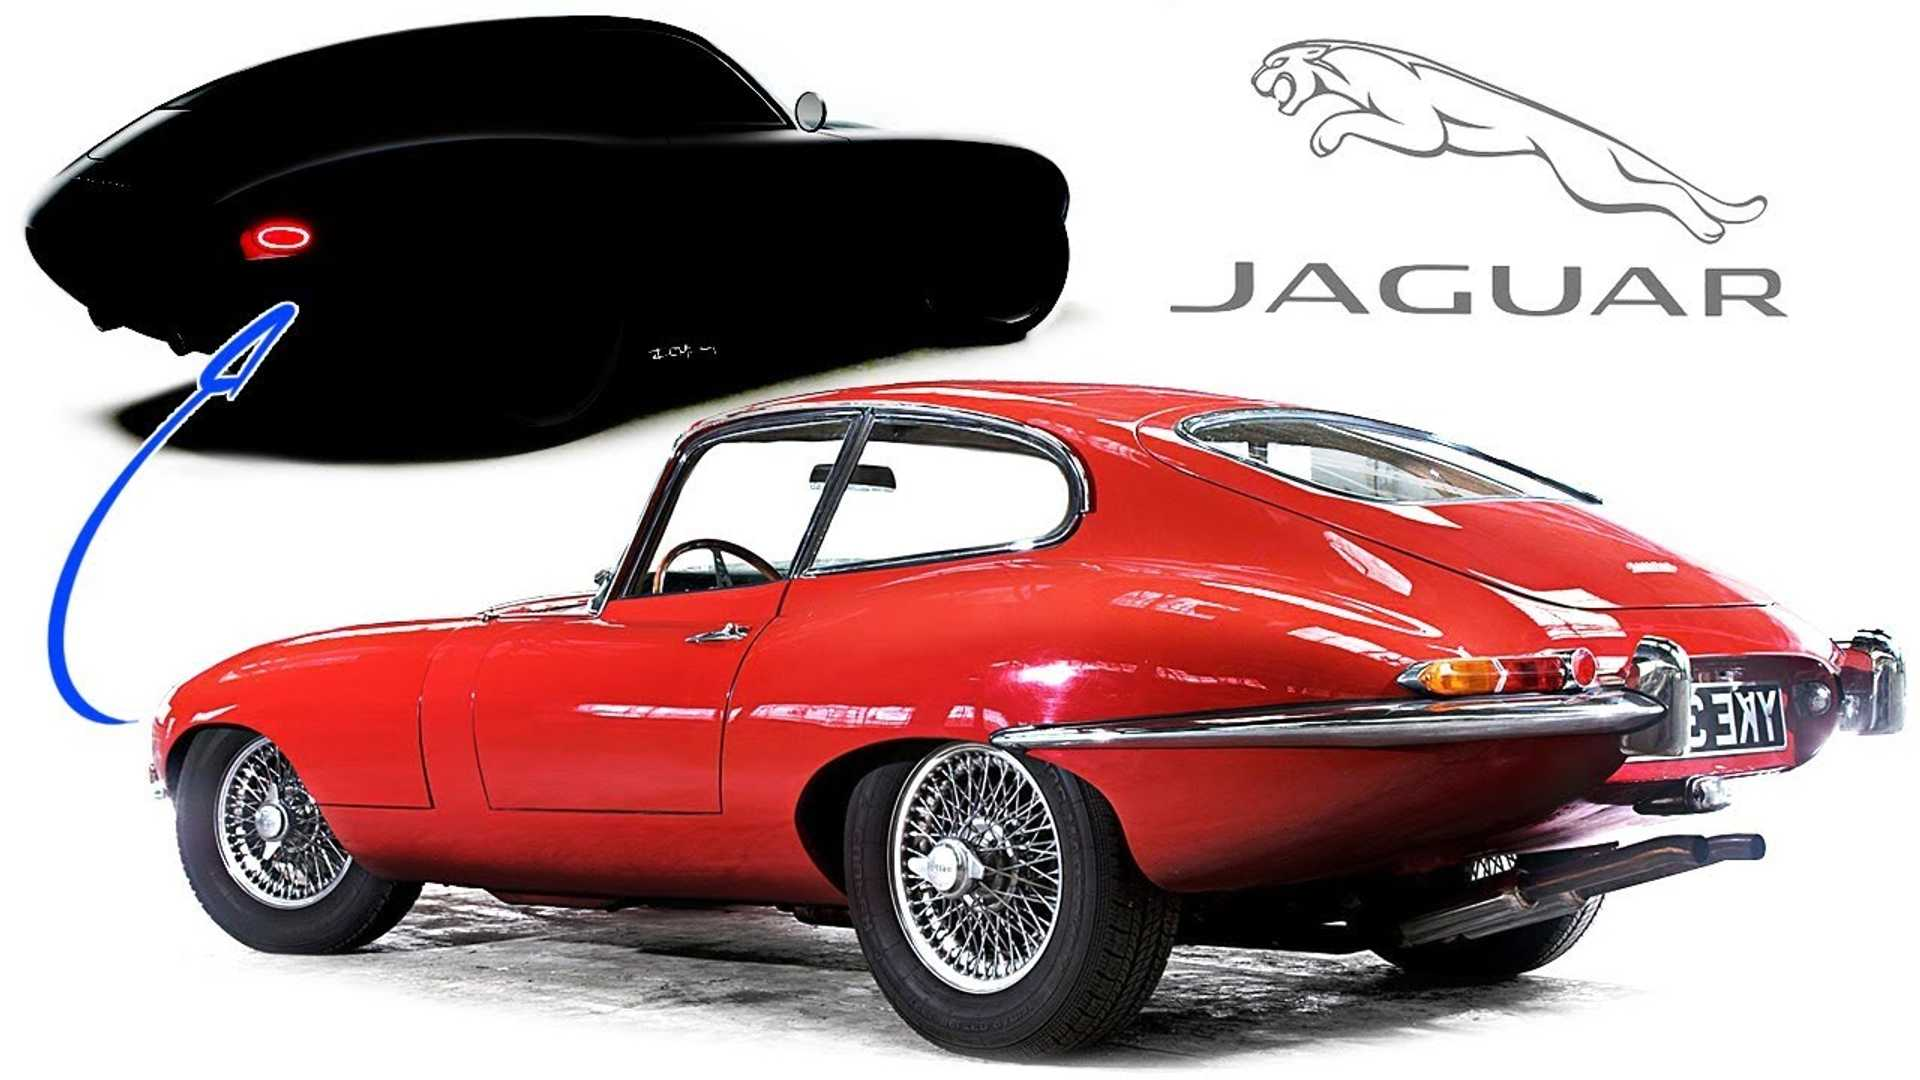 Someone had the courage to modernize the iconic Jaguar E-Type